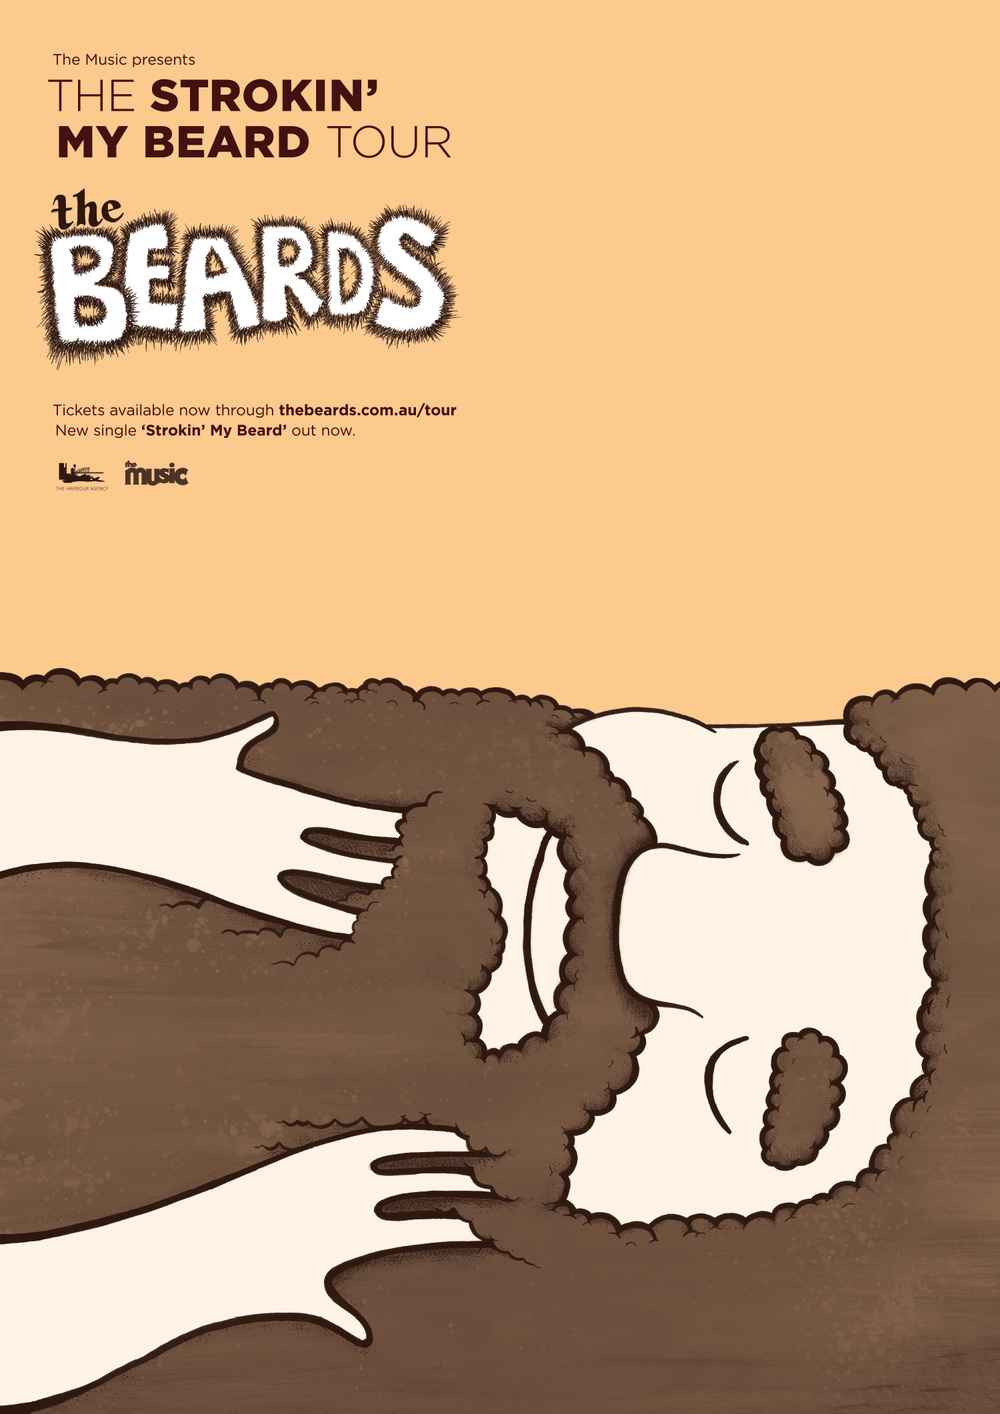 strokin-my-beard-poster-the-beards.jpg